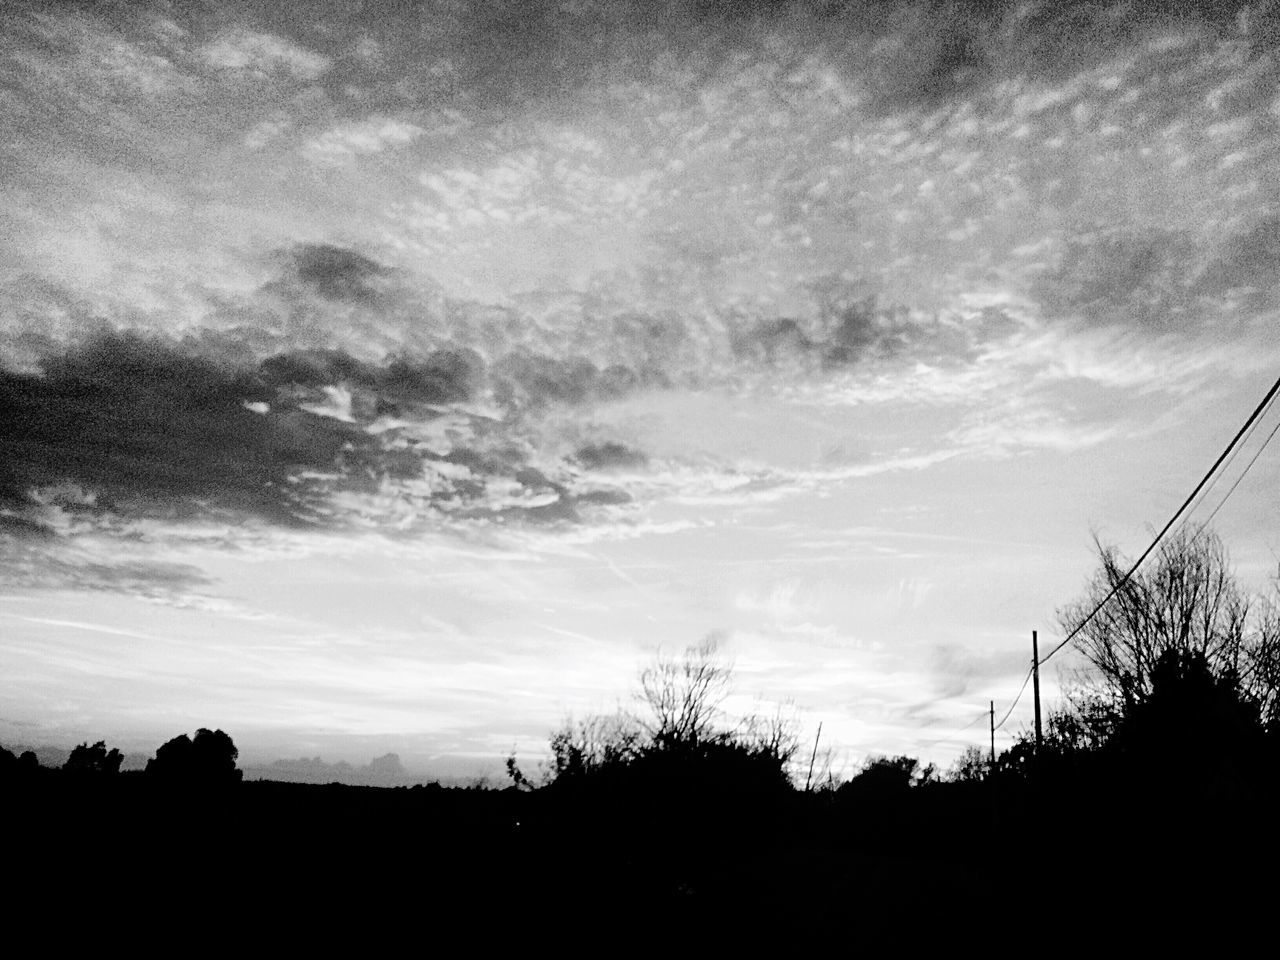 Winter Silhouette Tree Sky Nature Tranquility Scenics No People Outdoors Cloud - Sky Beauty In Nature Tranquil Scene Sunset Day Street Photography Streetphotography Streetphoto_bw Blackandwhite Black And White Black & White Rome Italy Monochrome Monochrome Photography EyeEm Best Shots Popular Photos